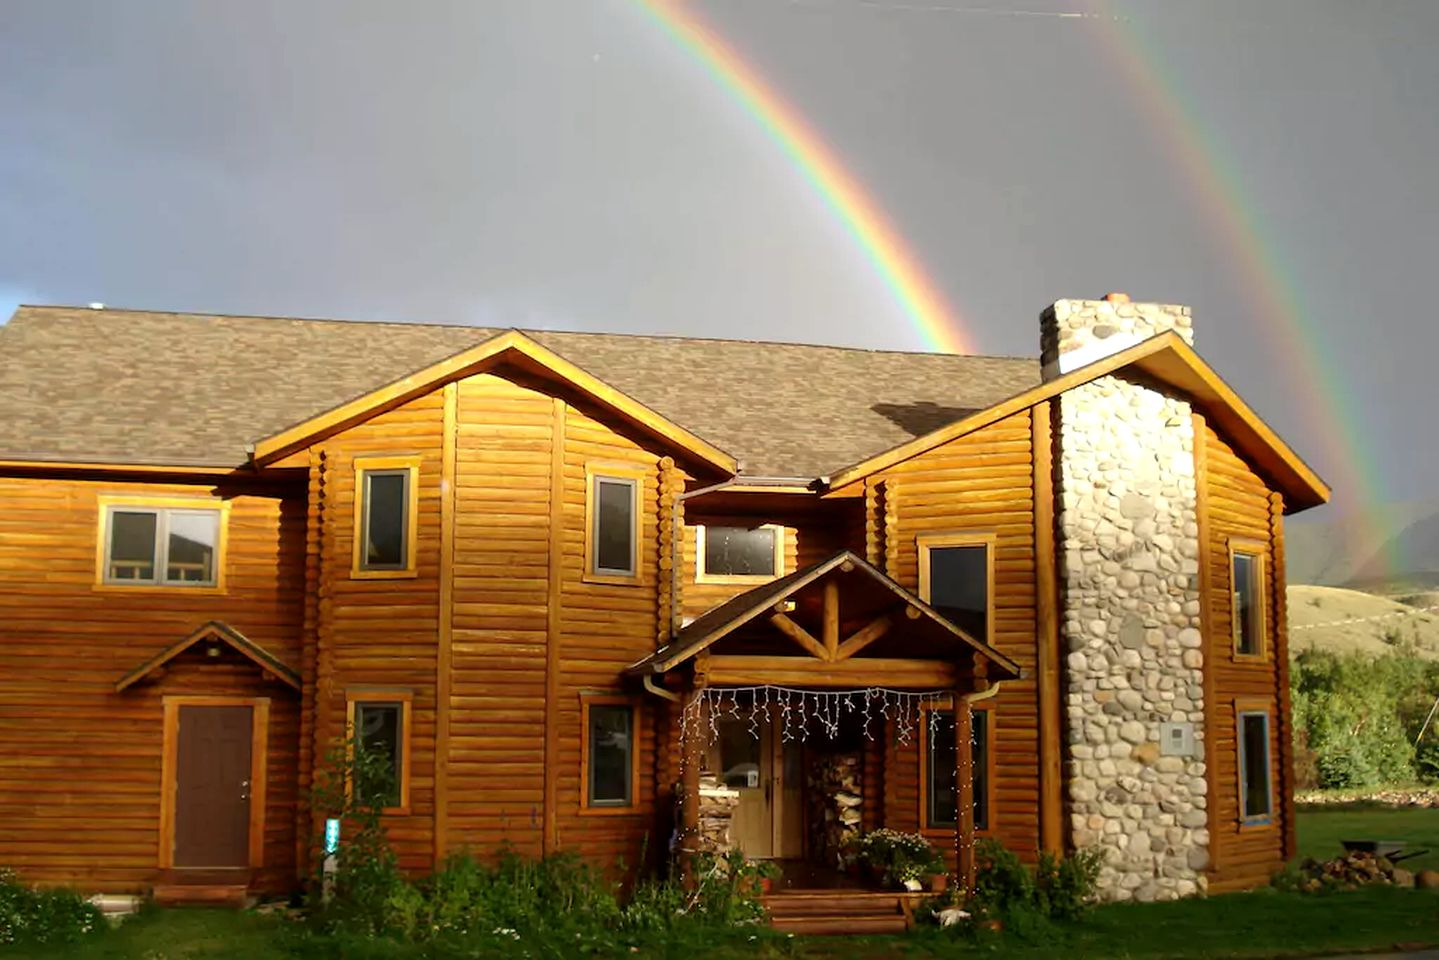 Nature Lodges (Red Lodge, Montana, United States)